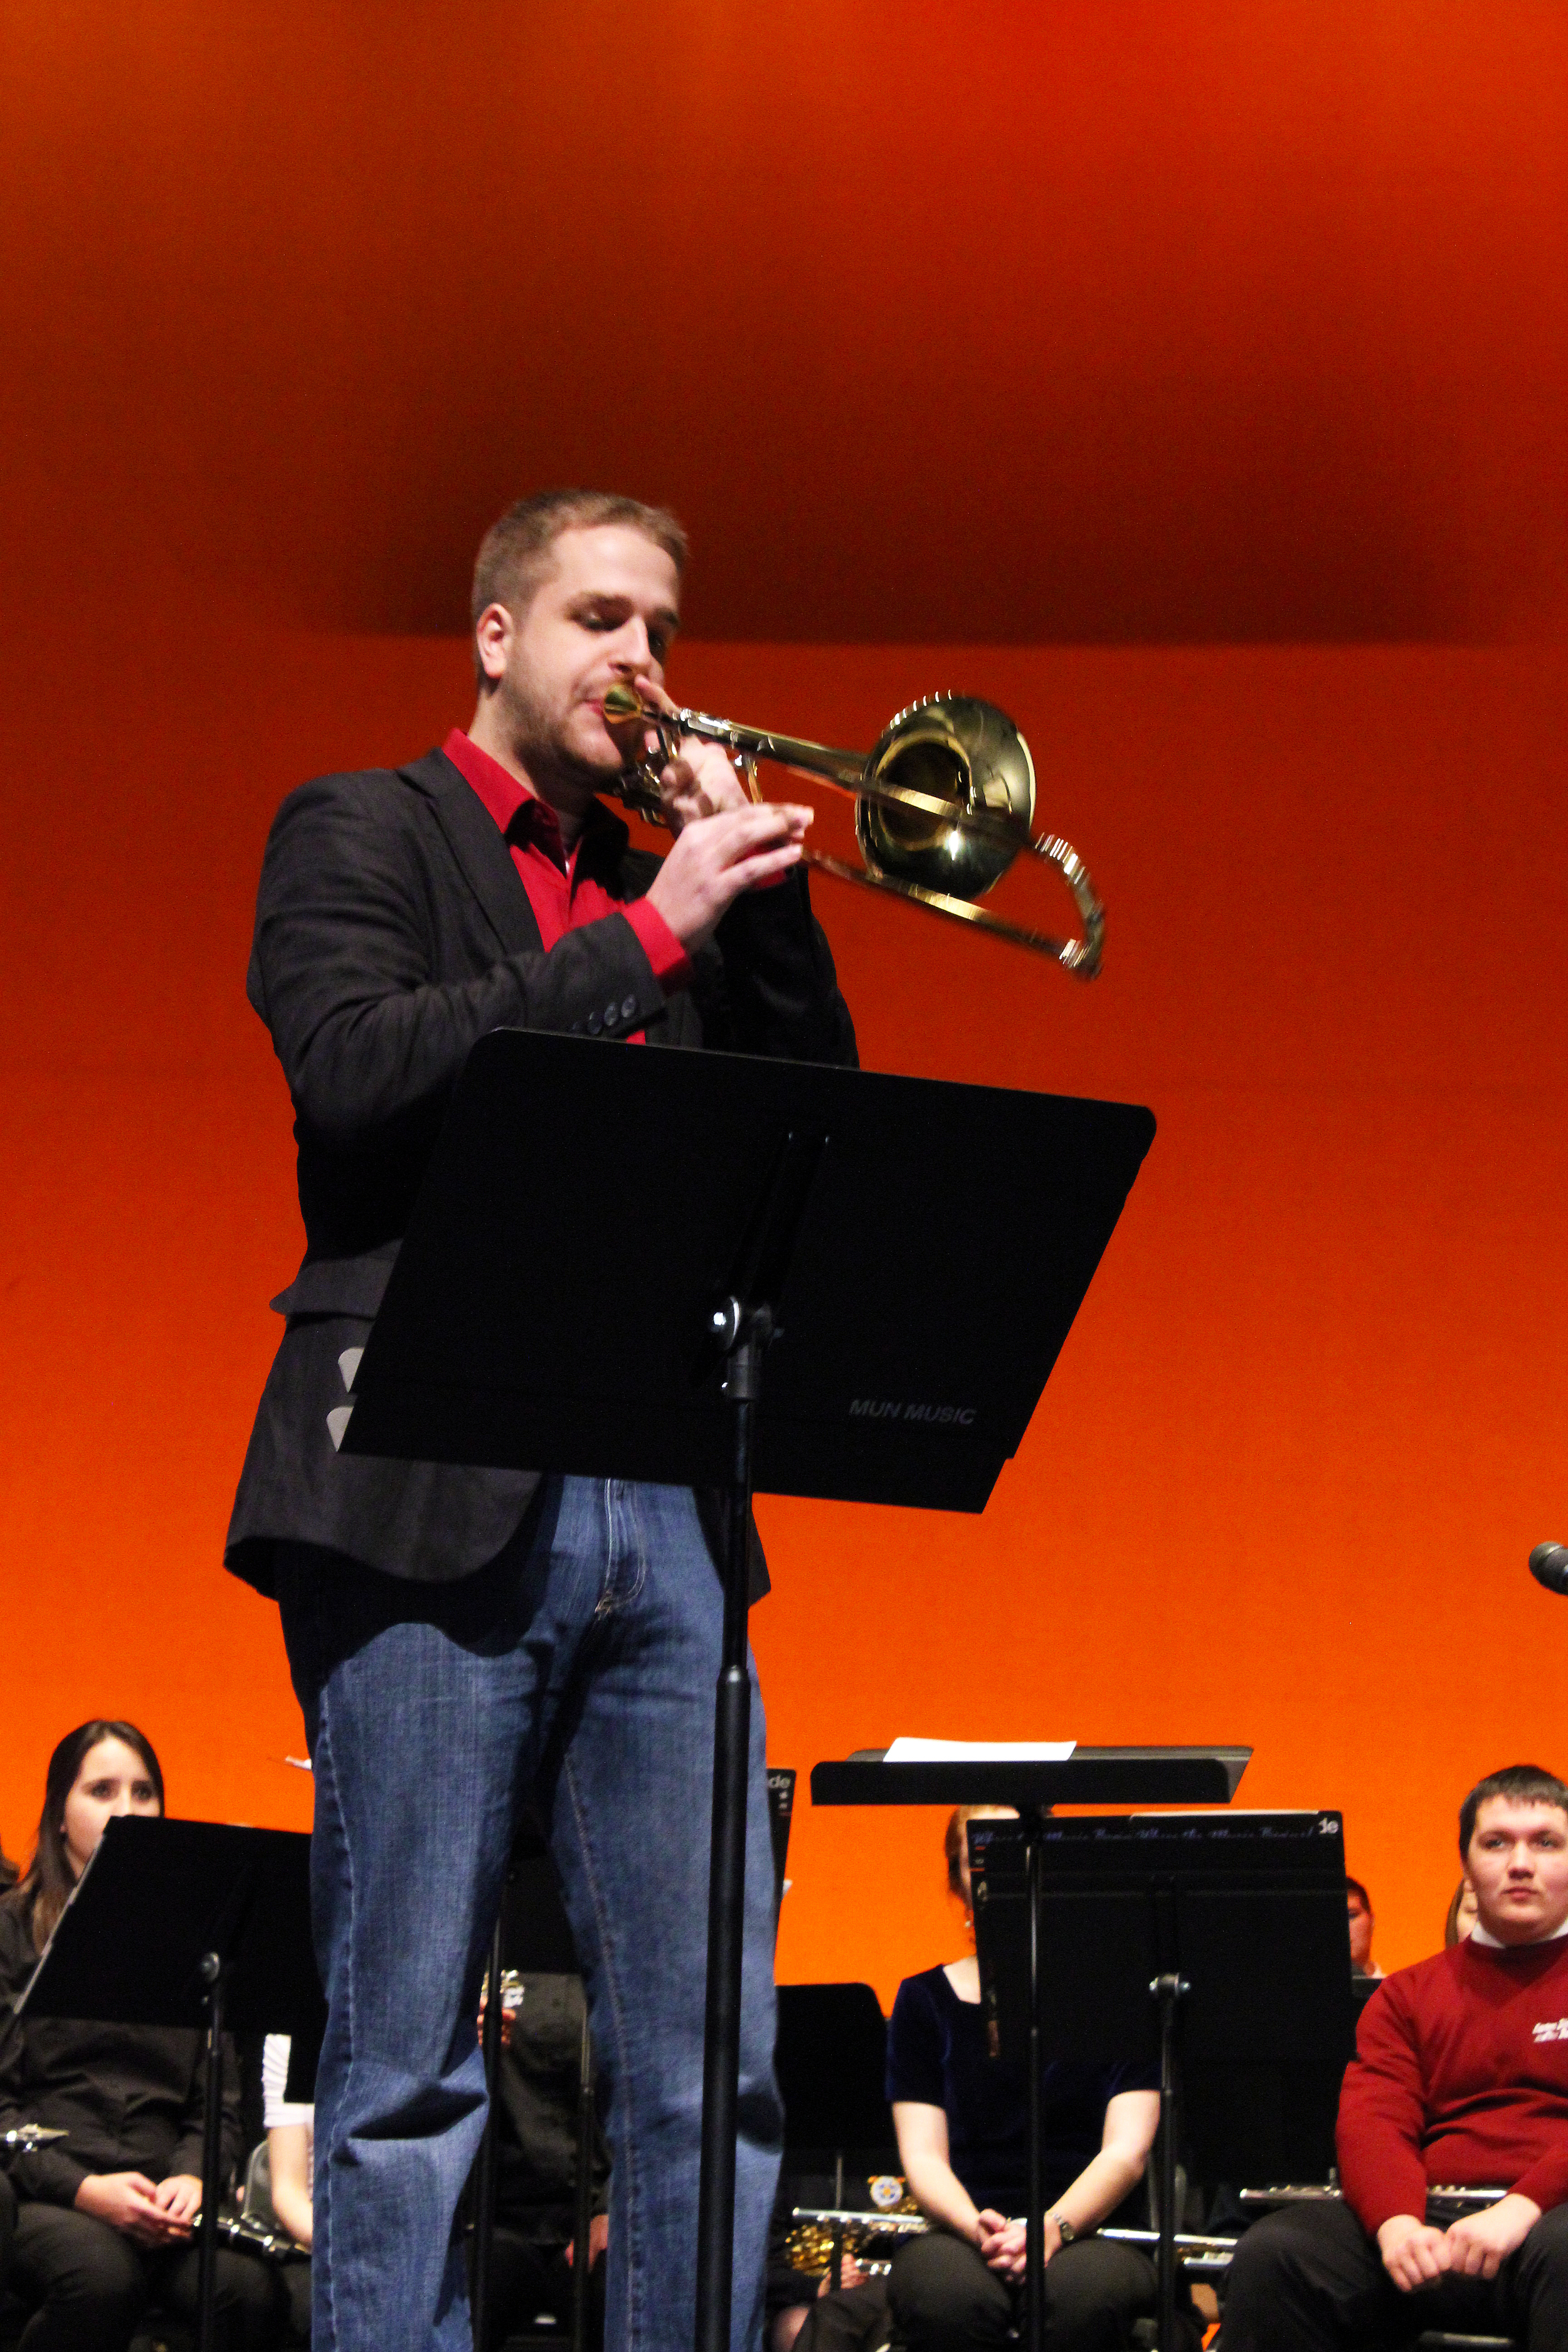 Performing with the Paddywagon Trombone Quartet